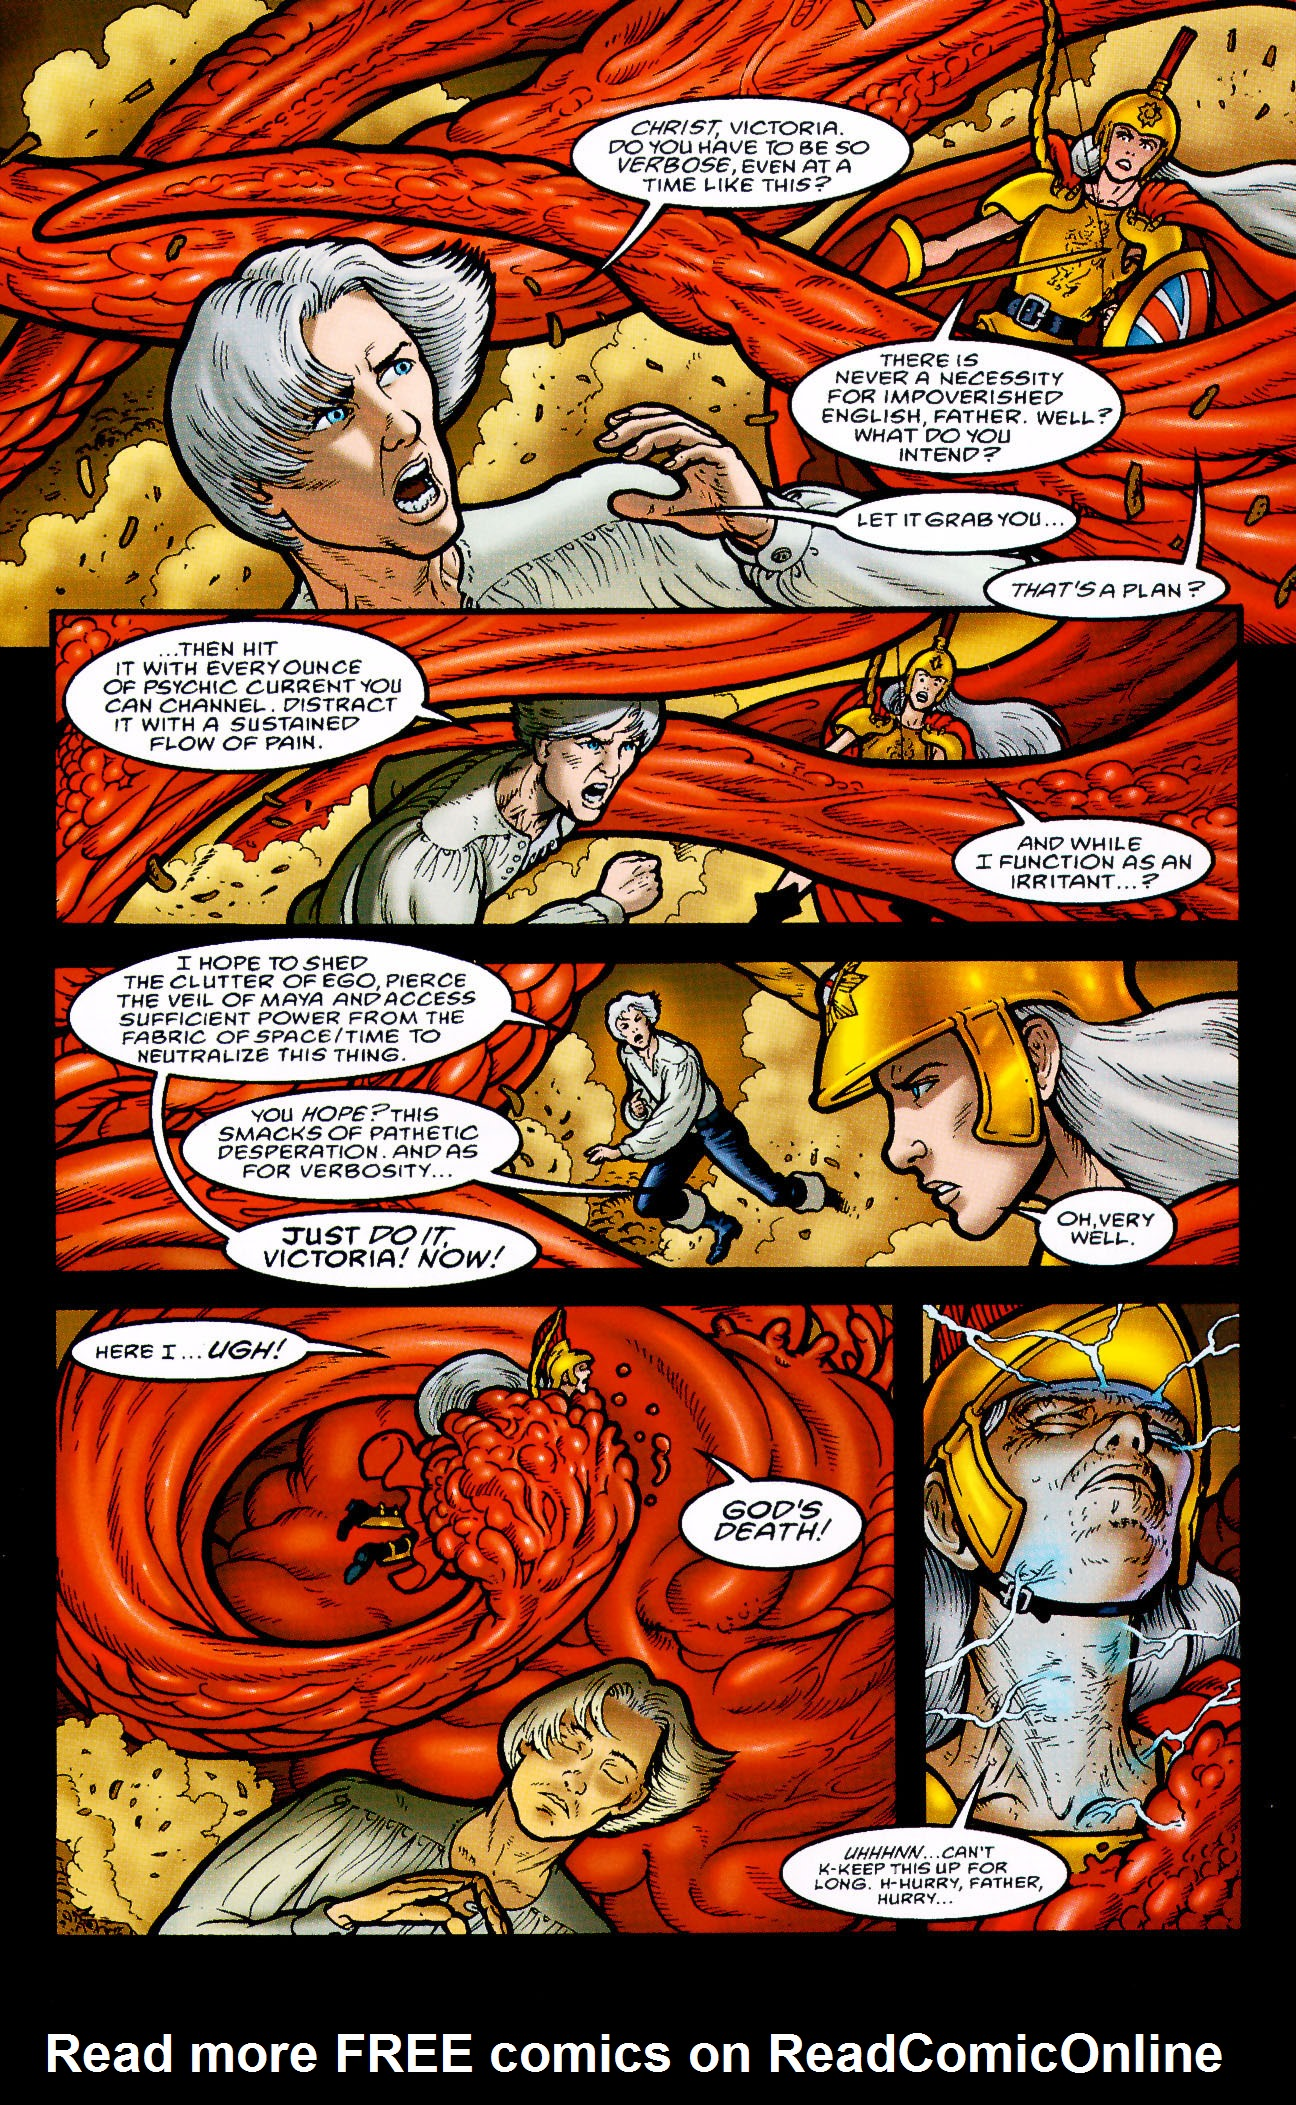 Read online Heart of Empire comic -  Issue #9 - 11